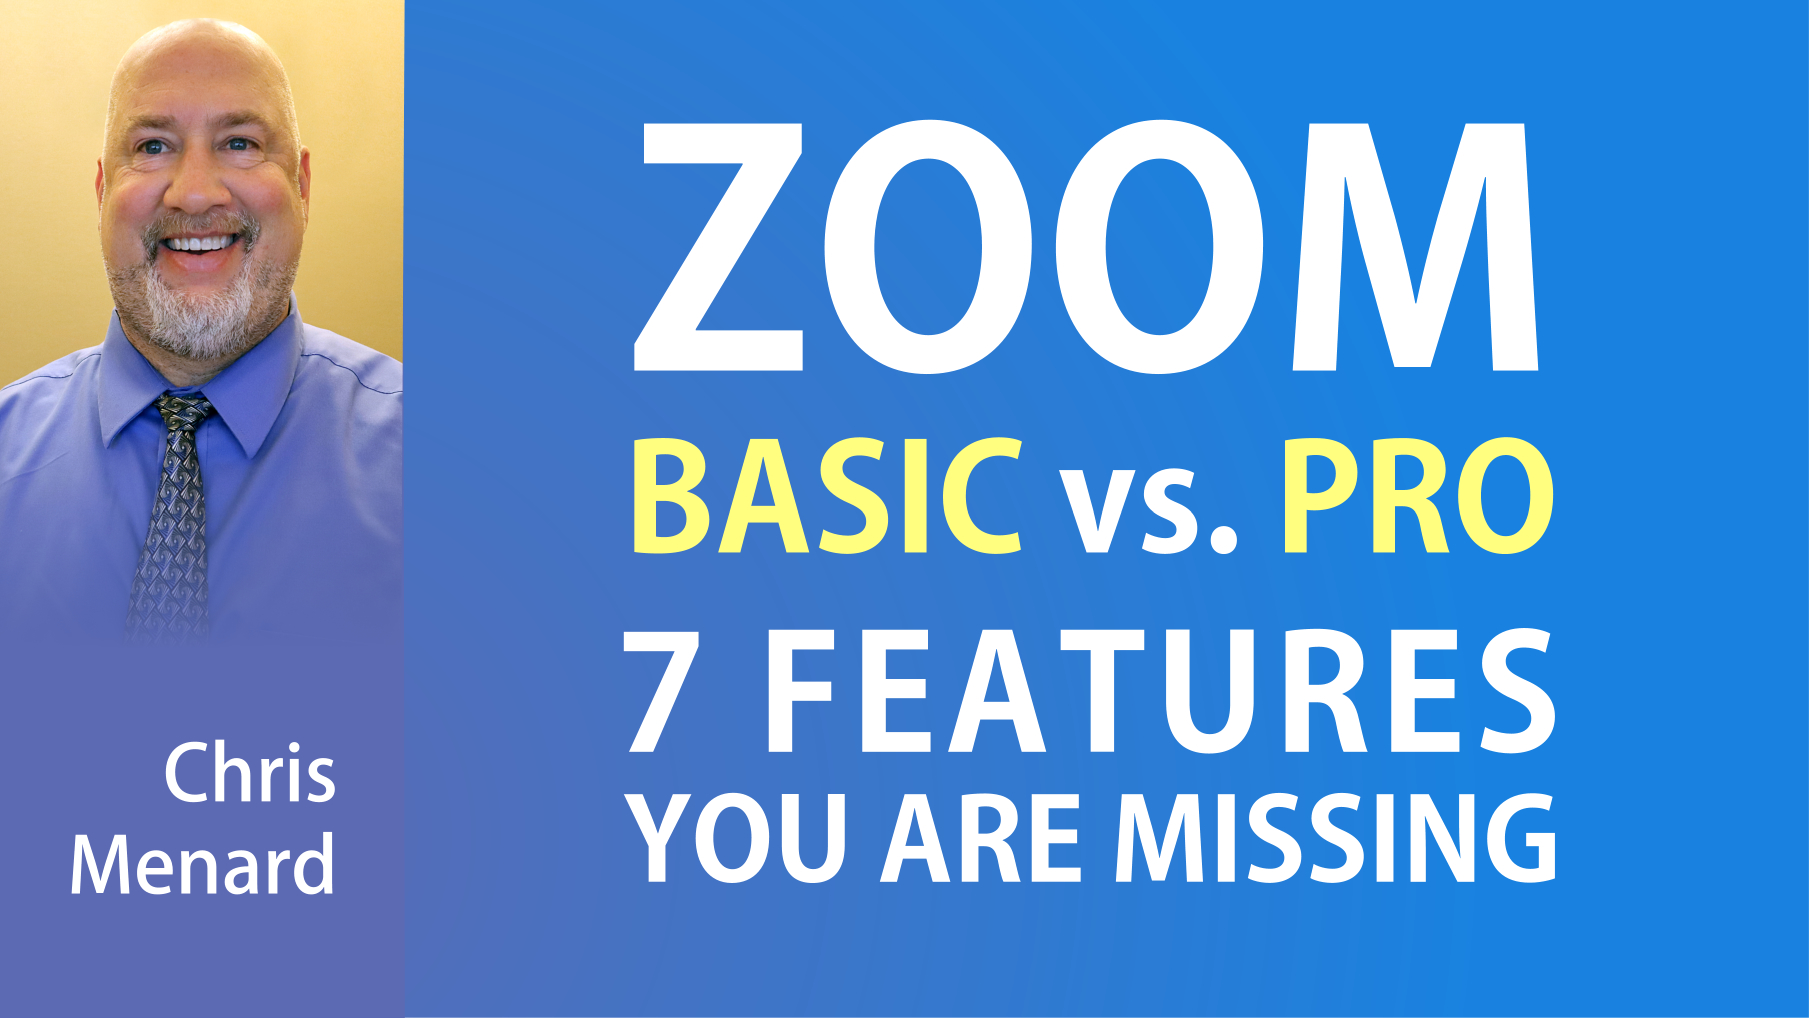 ZOOM : Basic vs. Pro Account - 7 Features you are missing